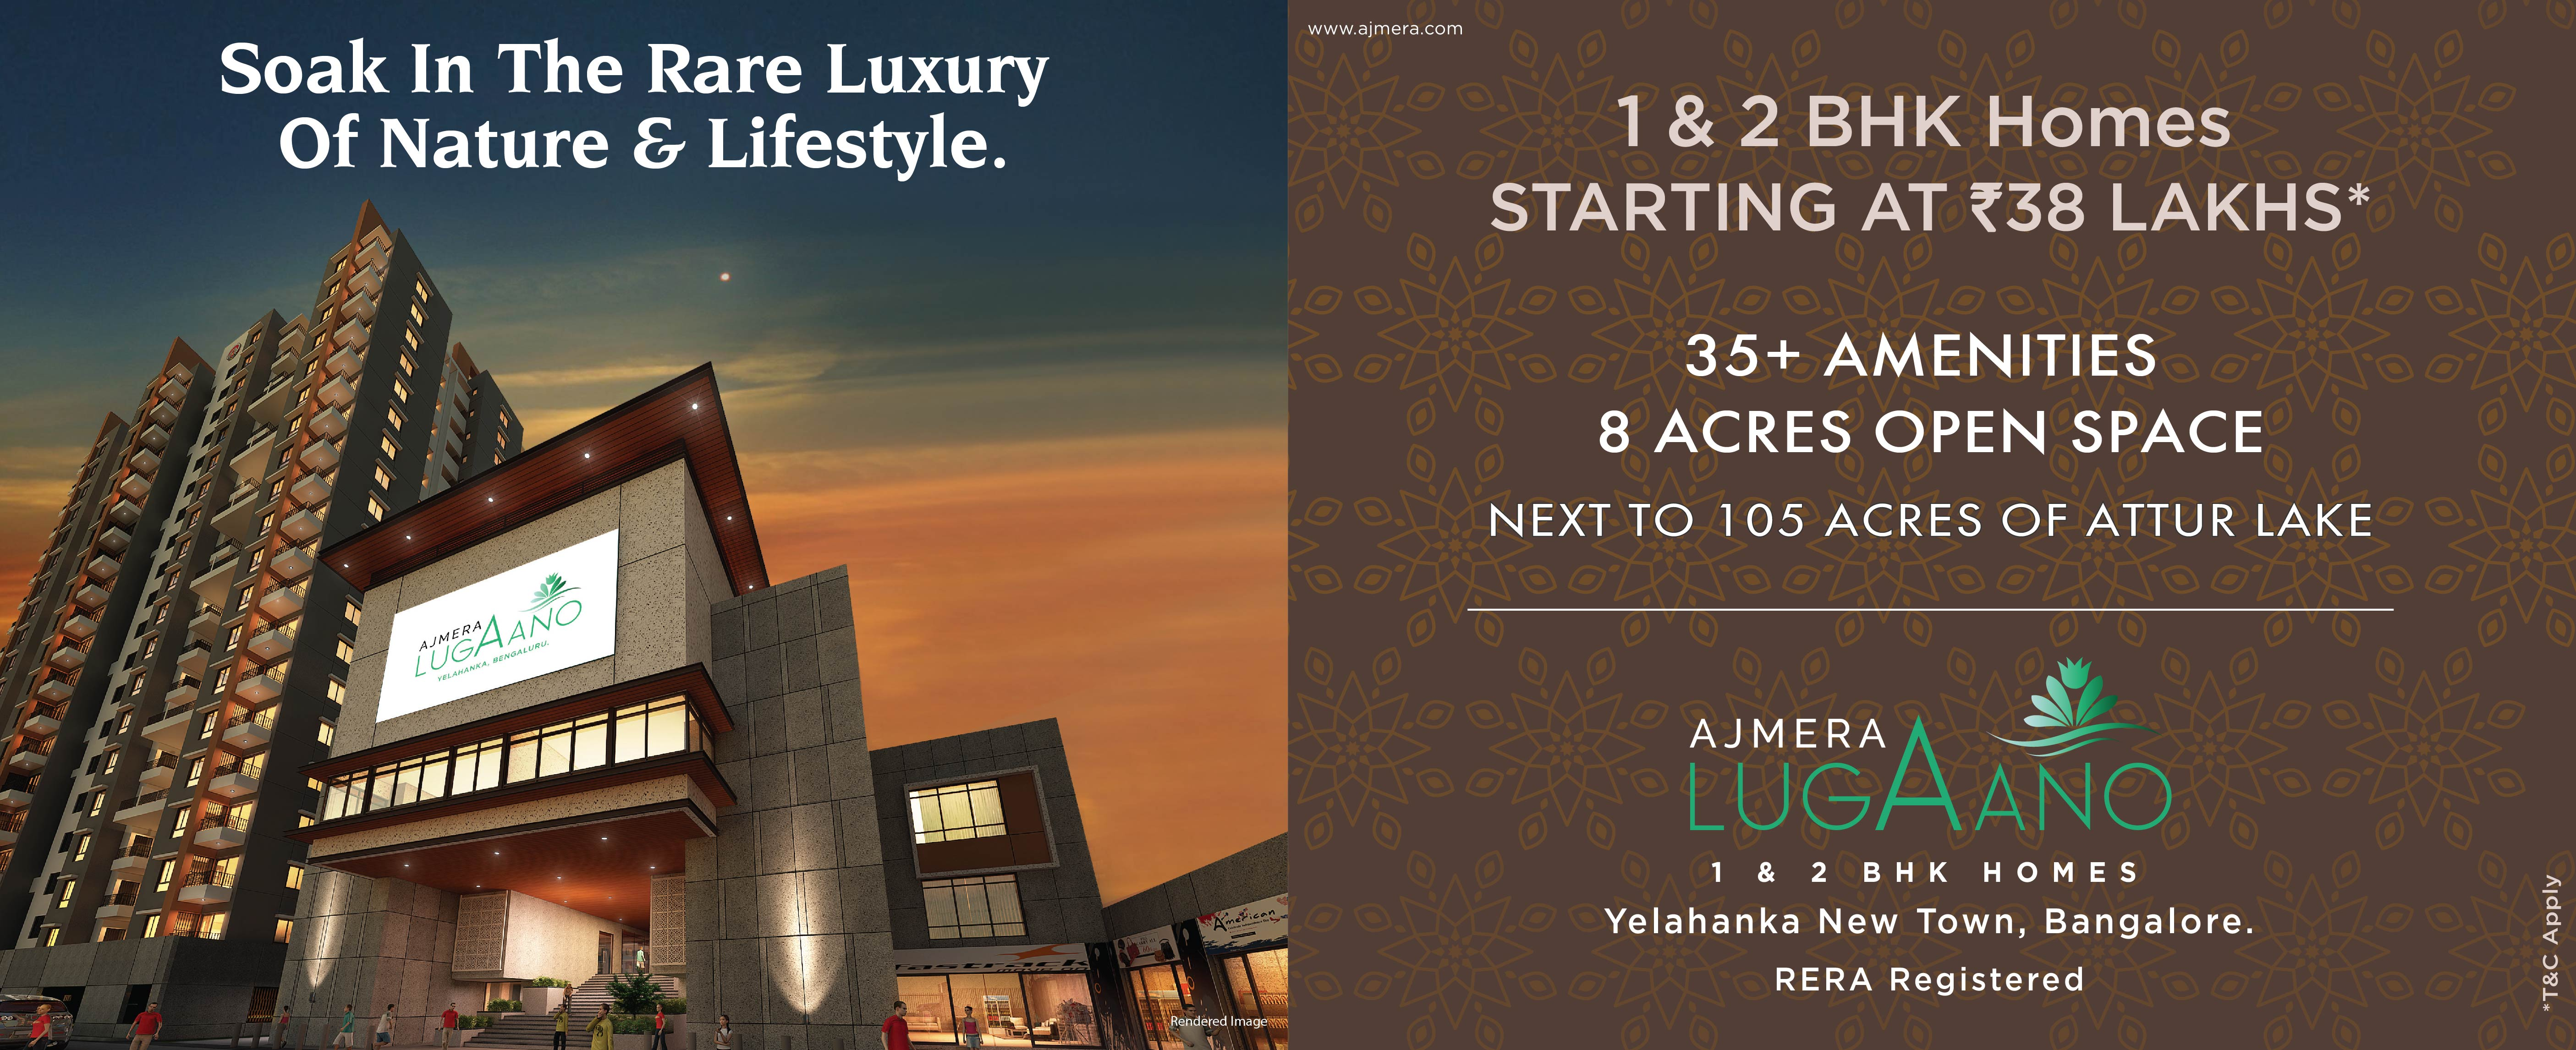 Ajmera Lugaano -Affordable 1&2 BHK in Yelahanka